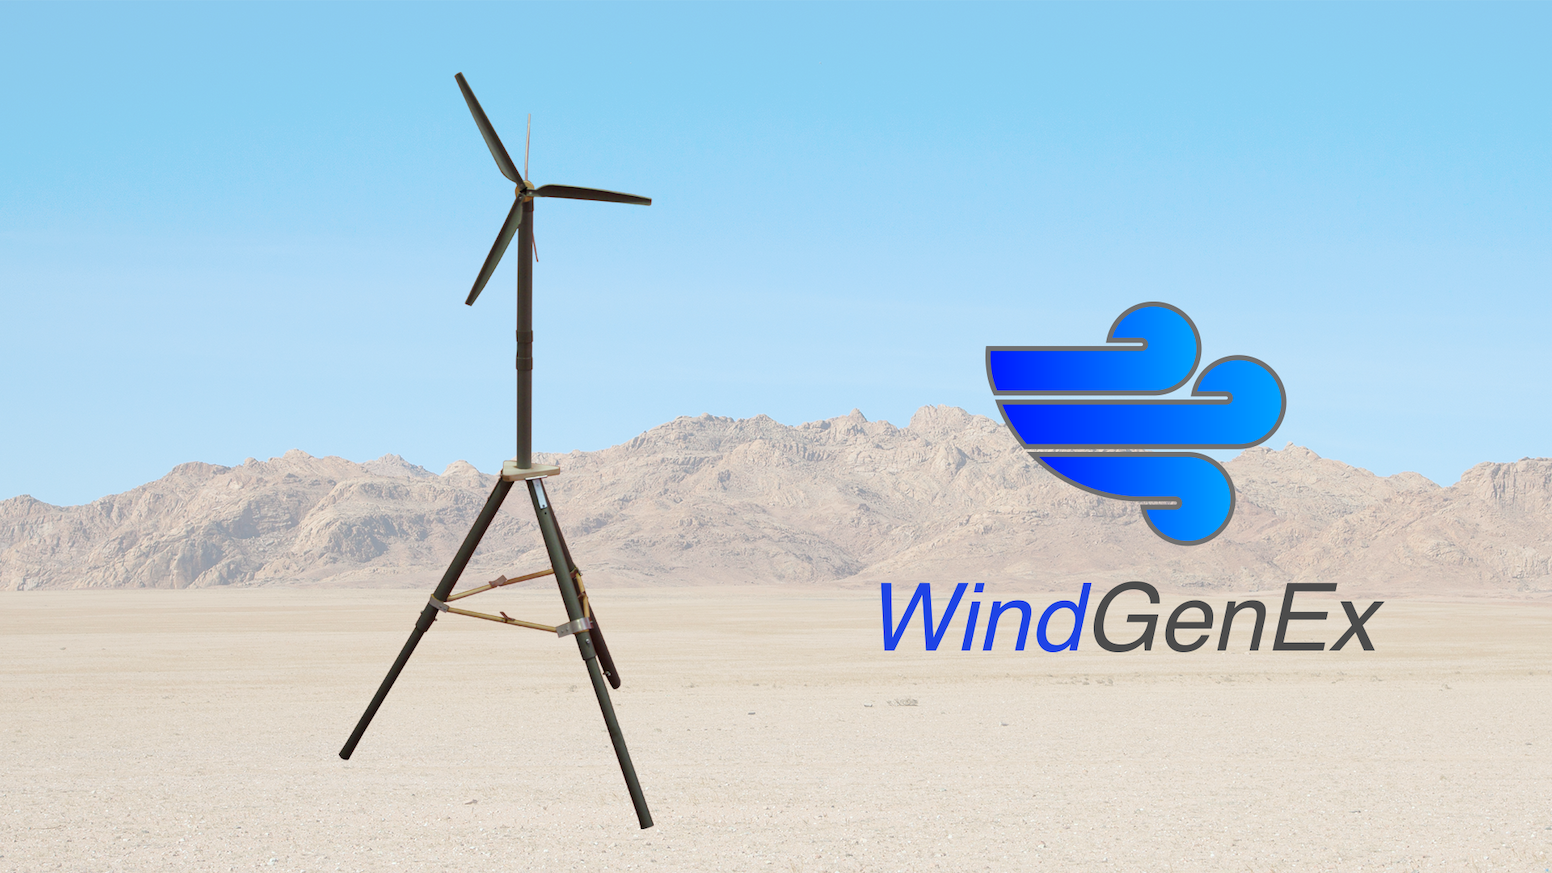 Windgenex D I Y Wind Turbine By Elias Goebel Faq